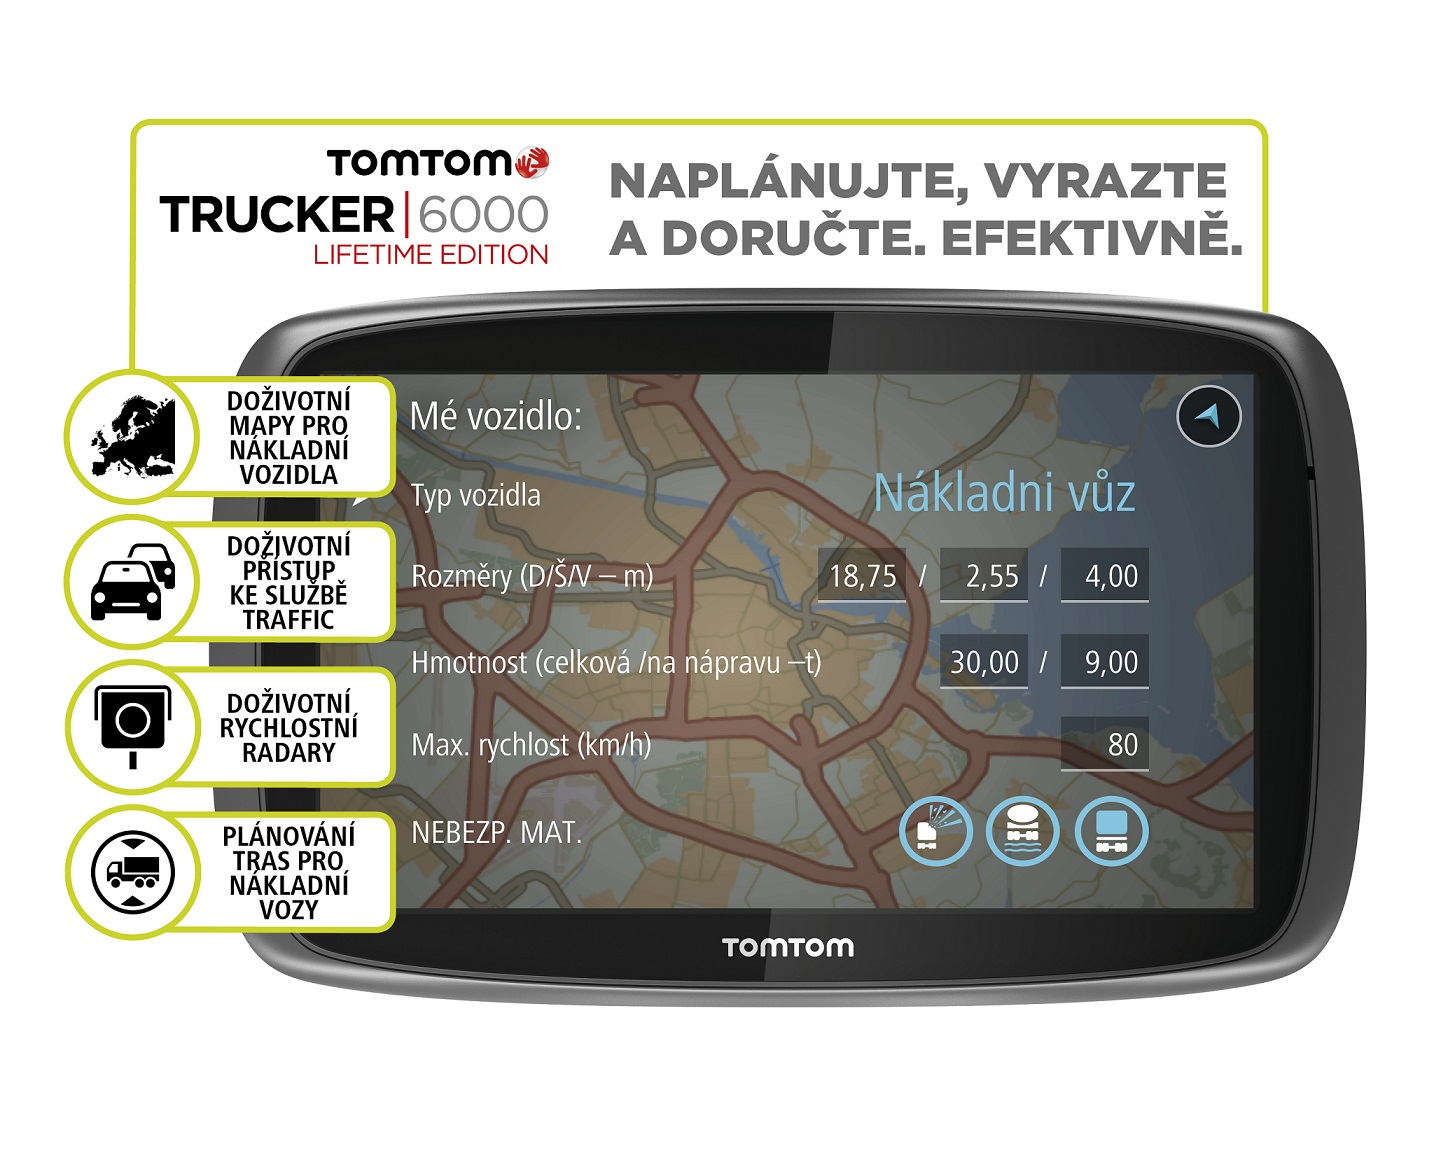 TomTom TRUCKER 6000 LIFETIME SERVICES, LIFETIME mapy